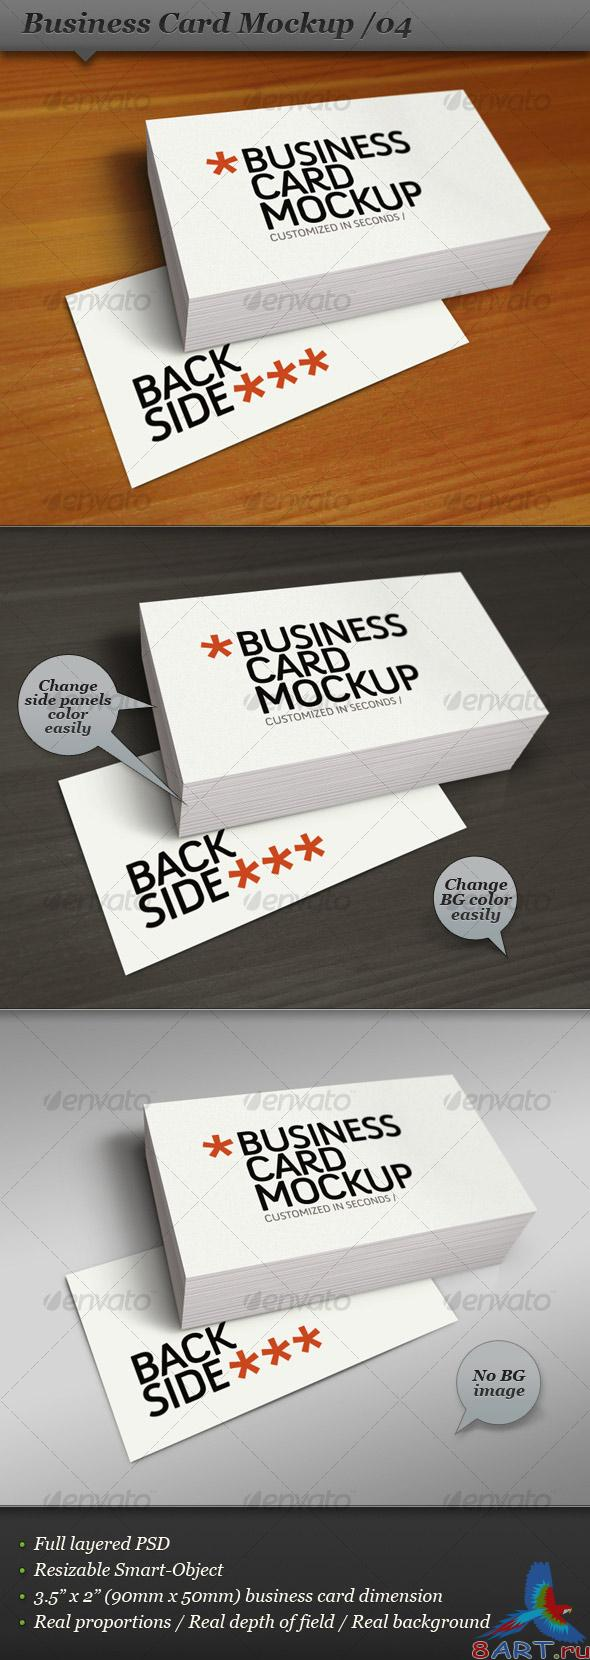 Business Card Mockup Display - Smart Template 04 - GraphicRiver